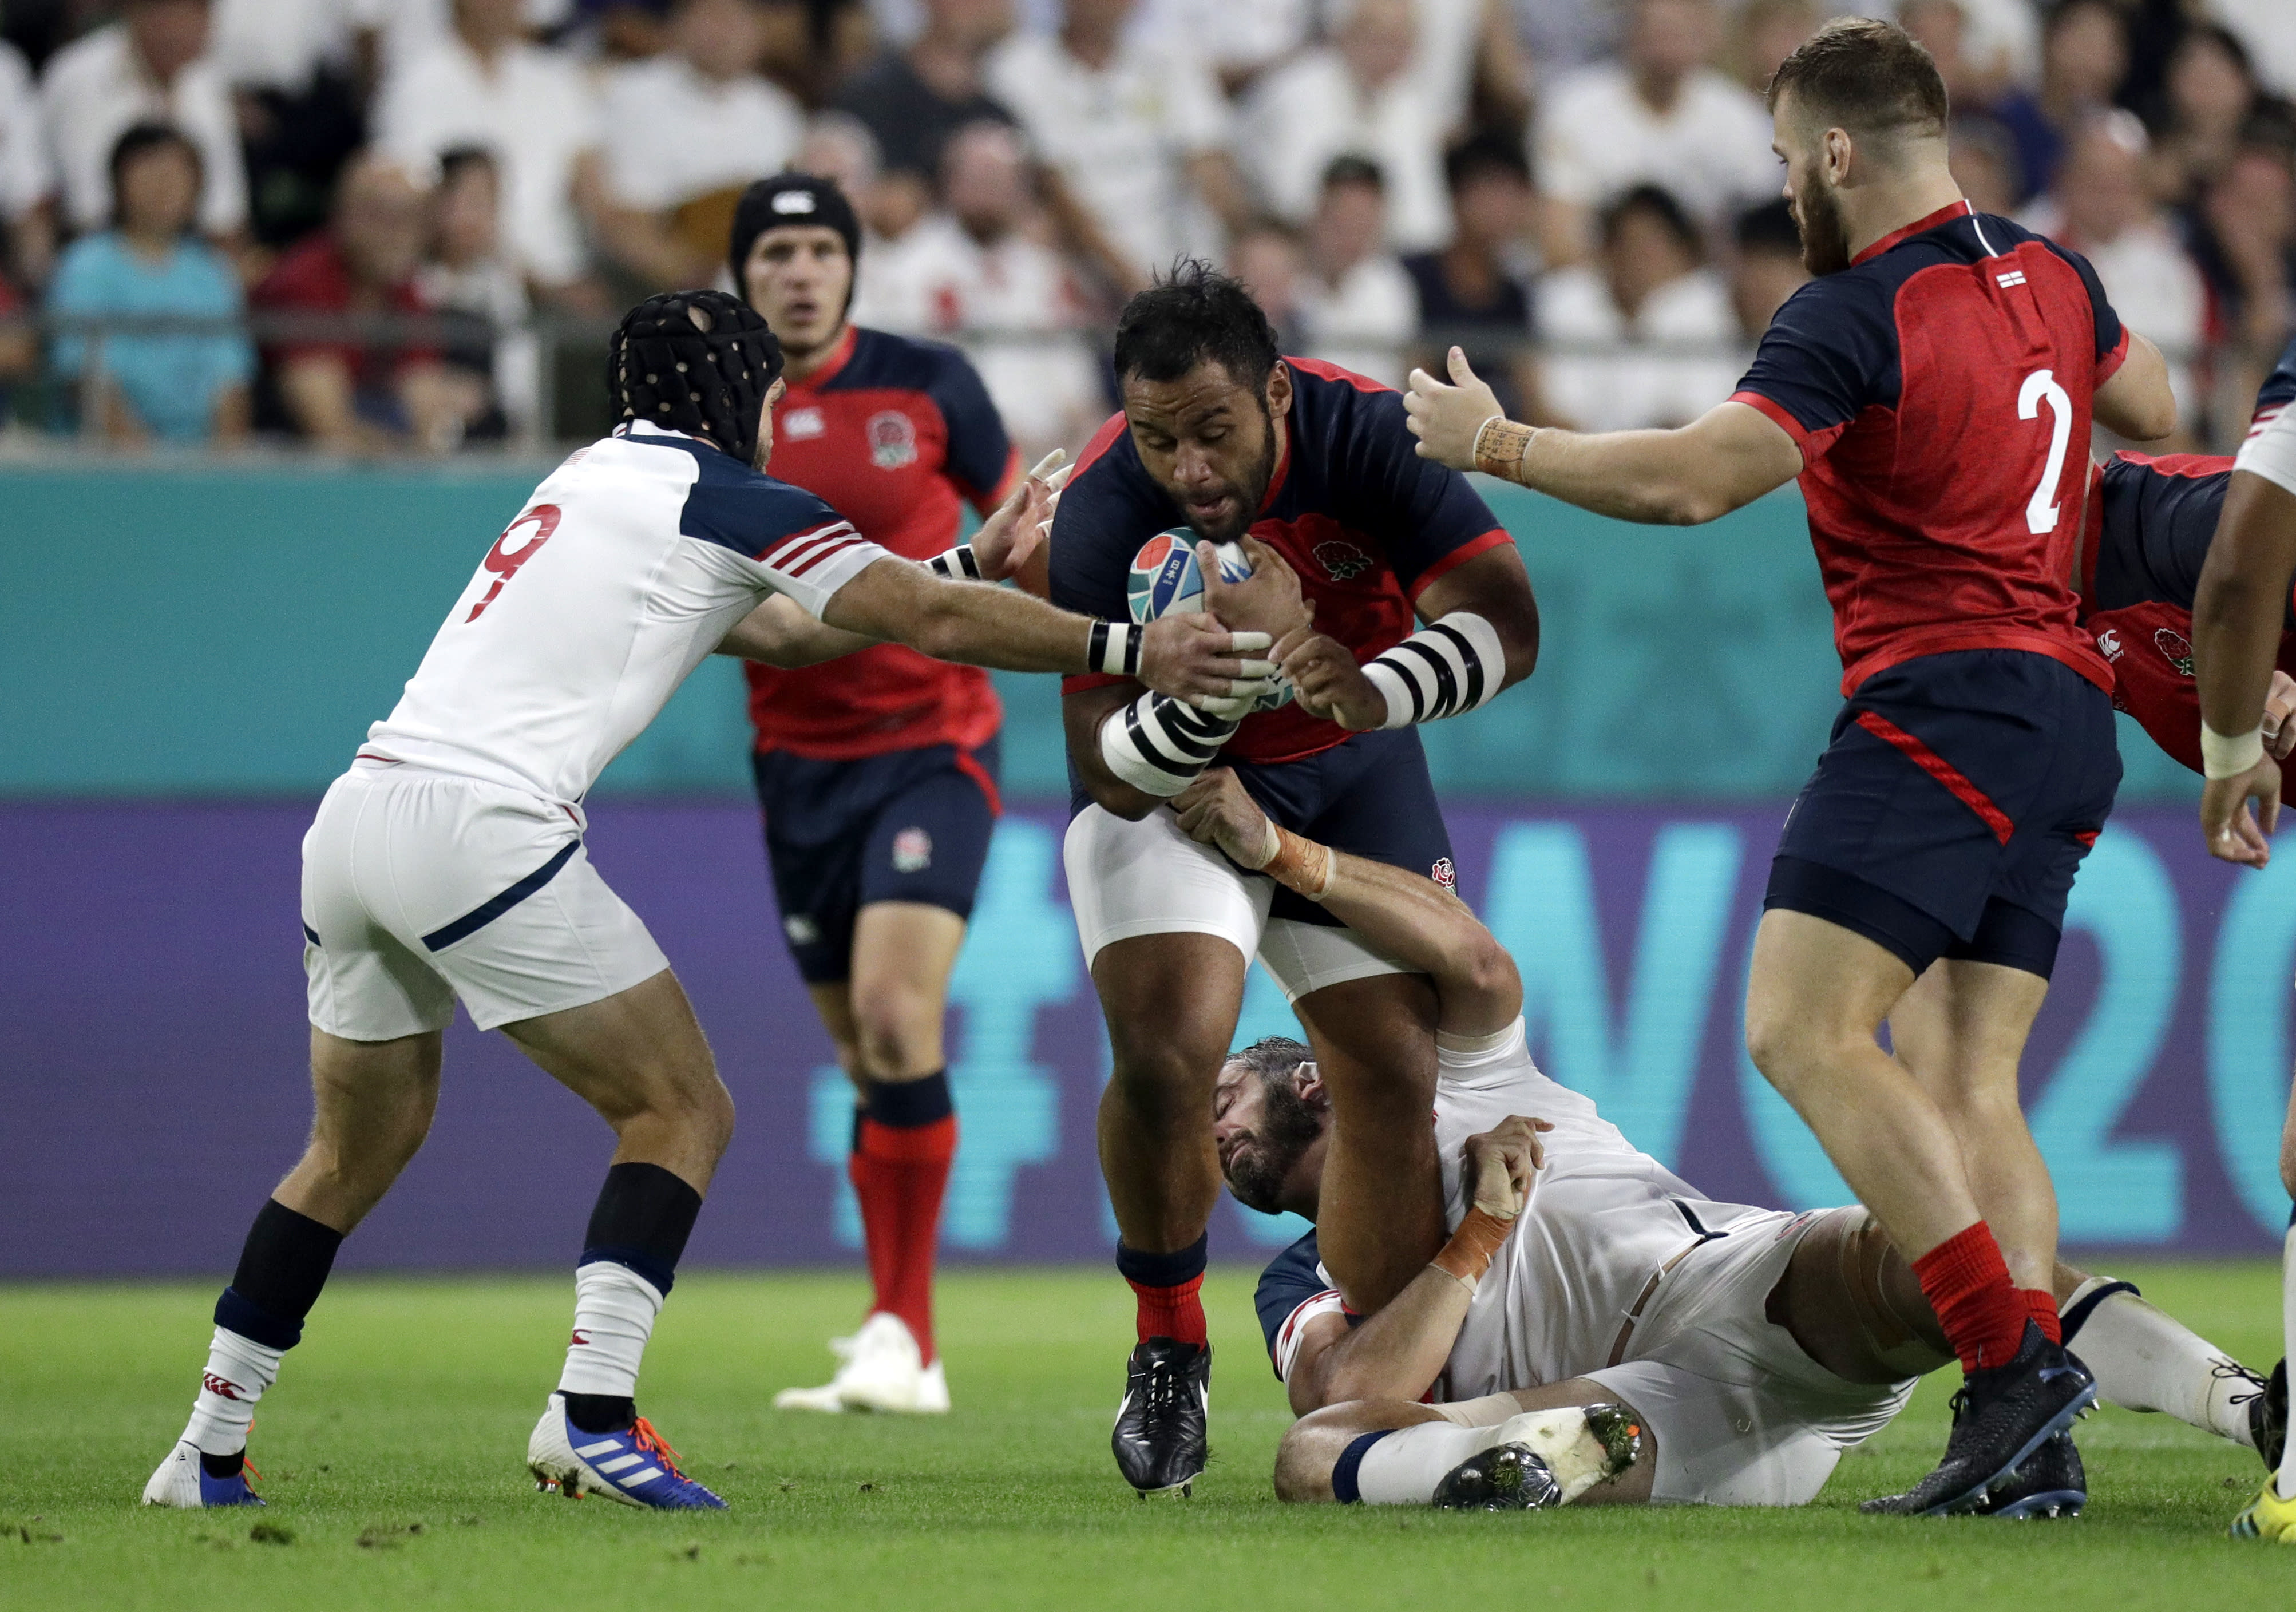 Baggage unpacked, England intent of making amends for 2015